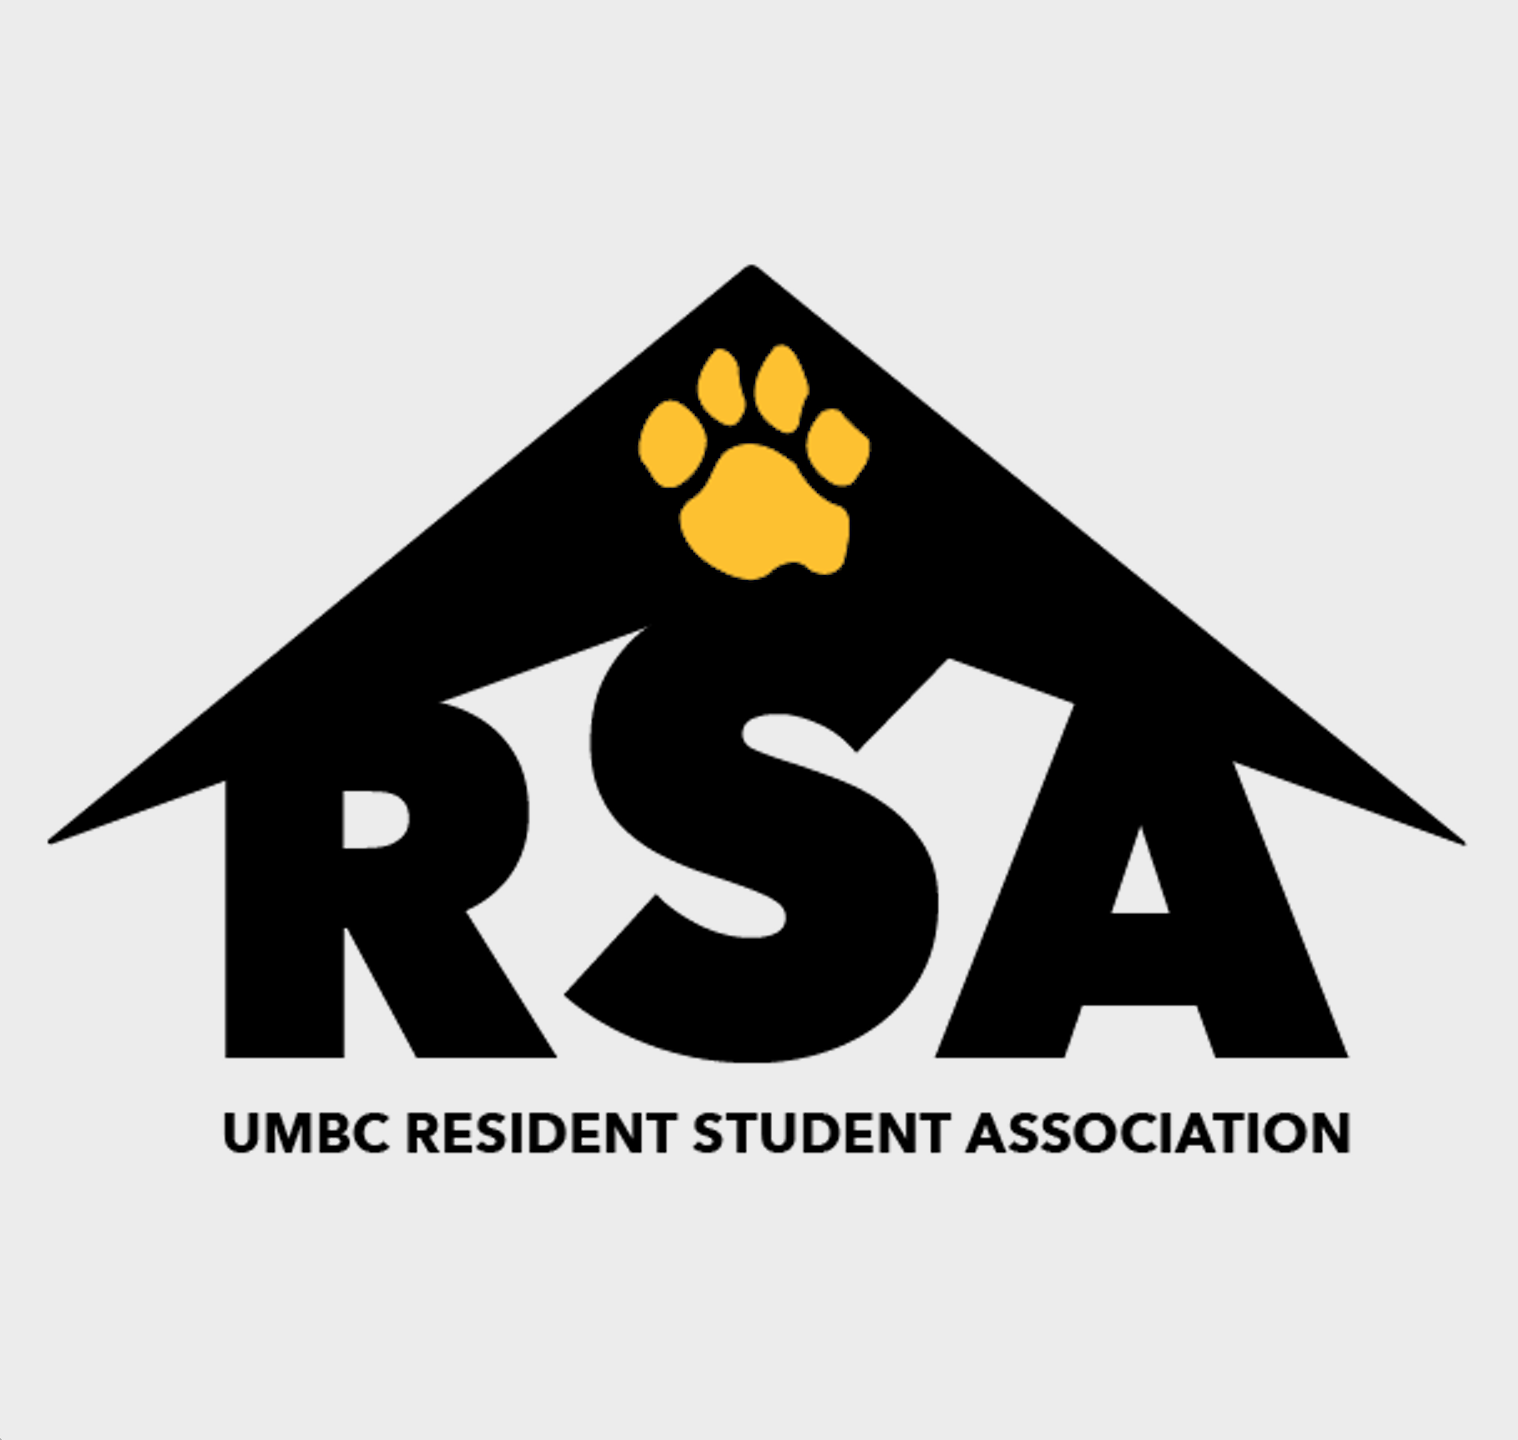 Apply to join the RSA Executive Board!